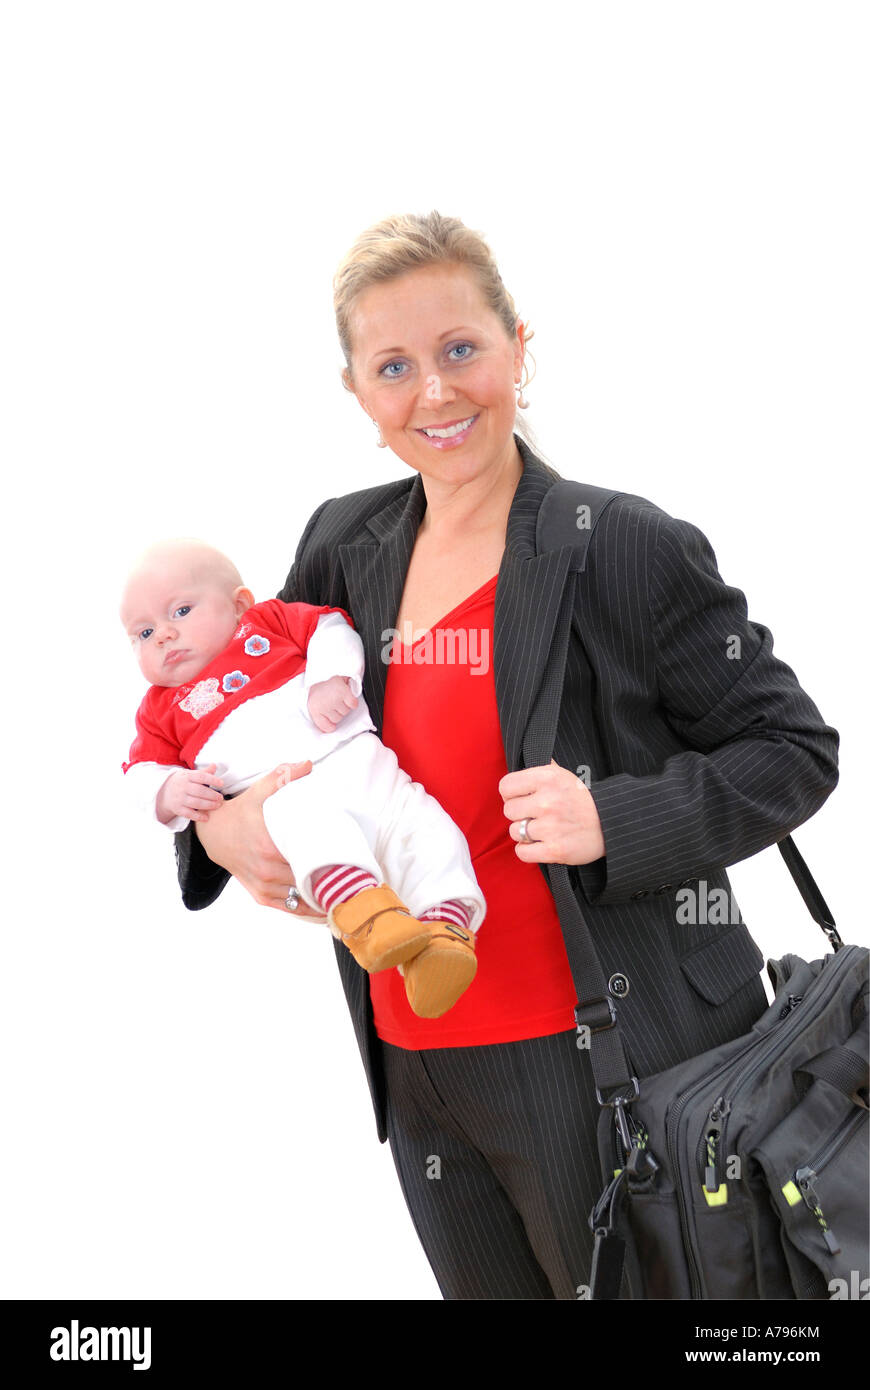 young business woman with small child baby - Stock Image